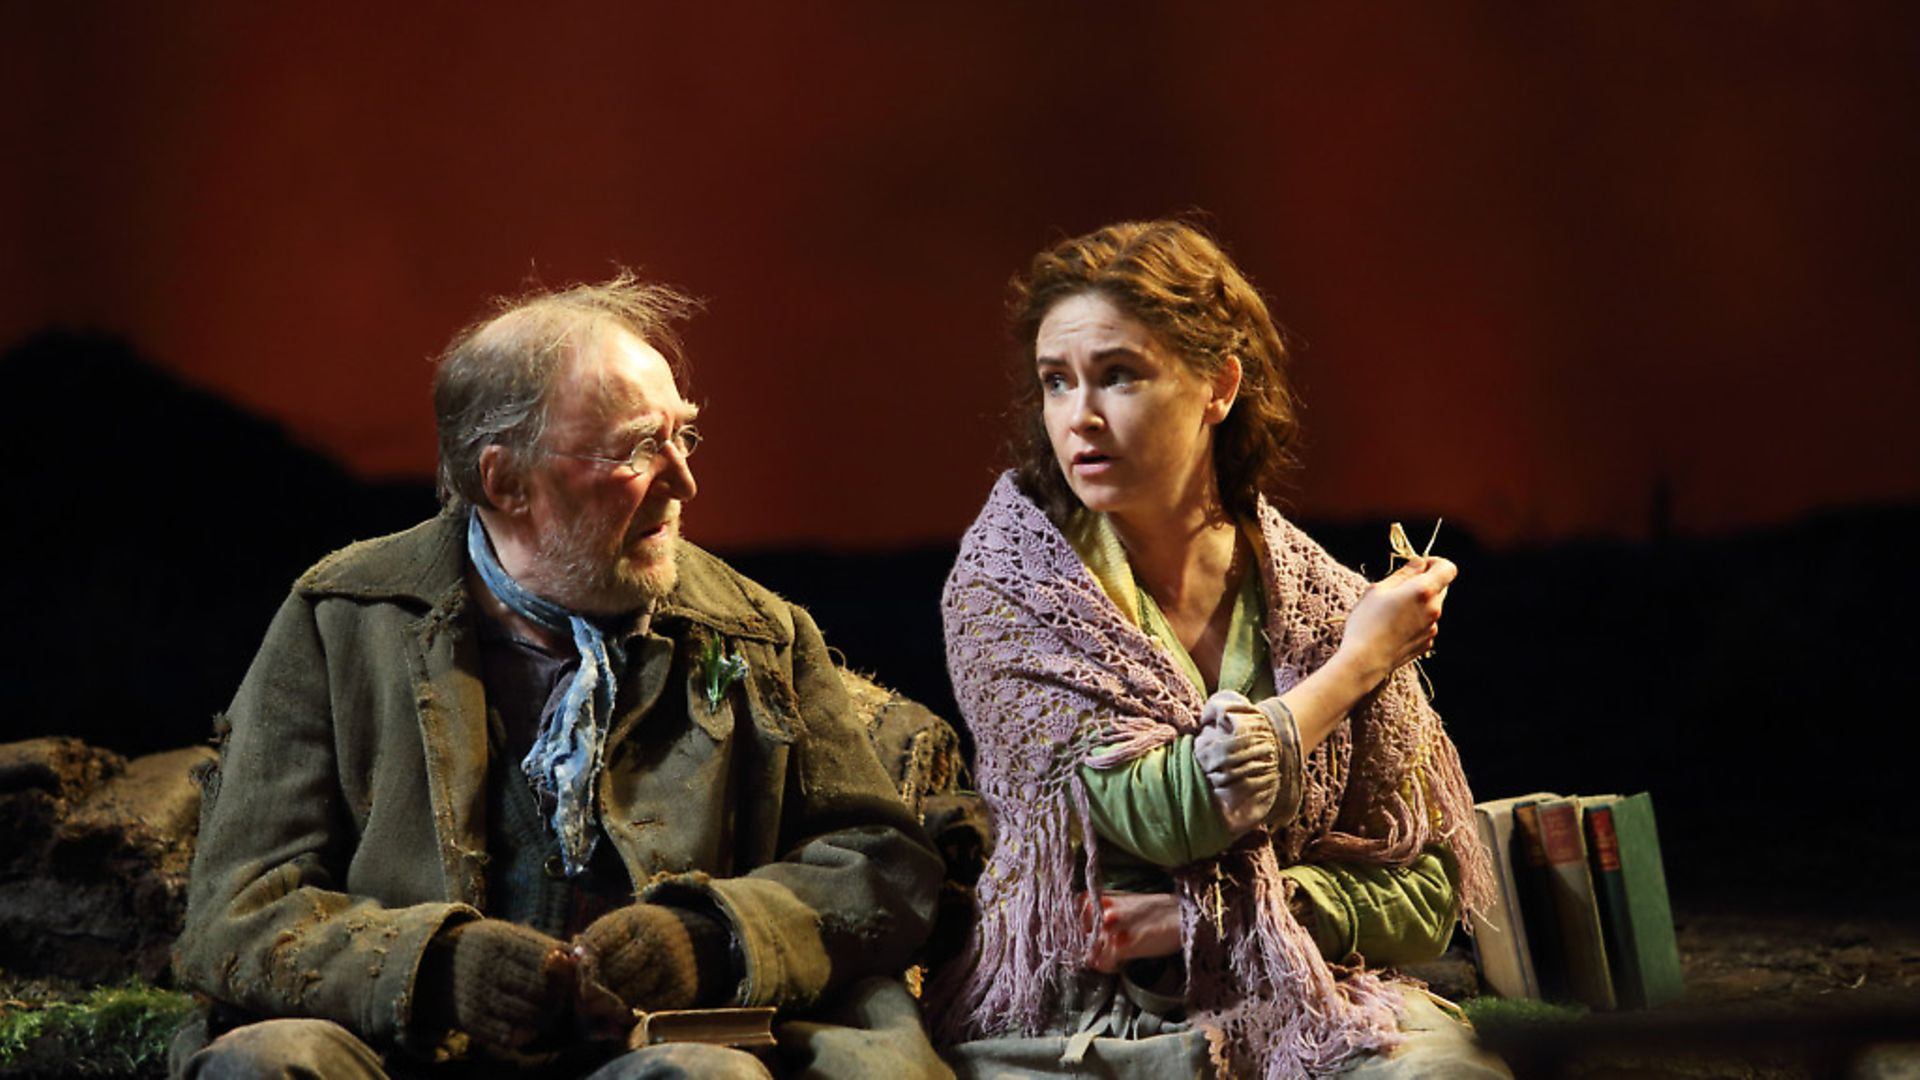 Dermot Crowley and Judith Roddy in Brian Friel's Translations. Photo: Catherine Ashmore - Credit: Archant